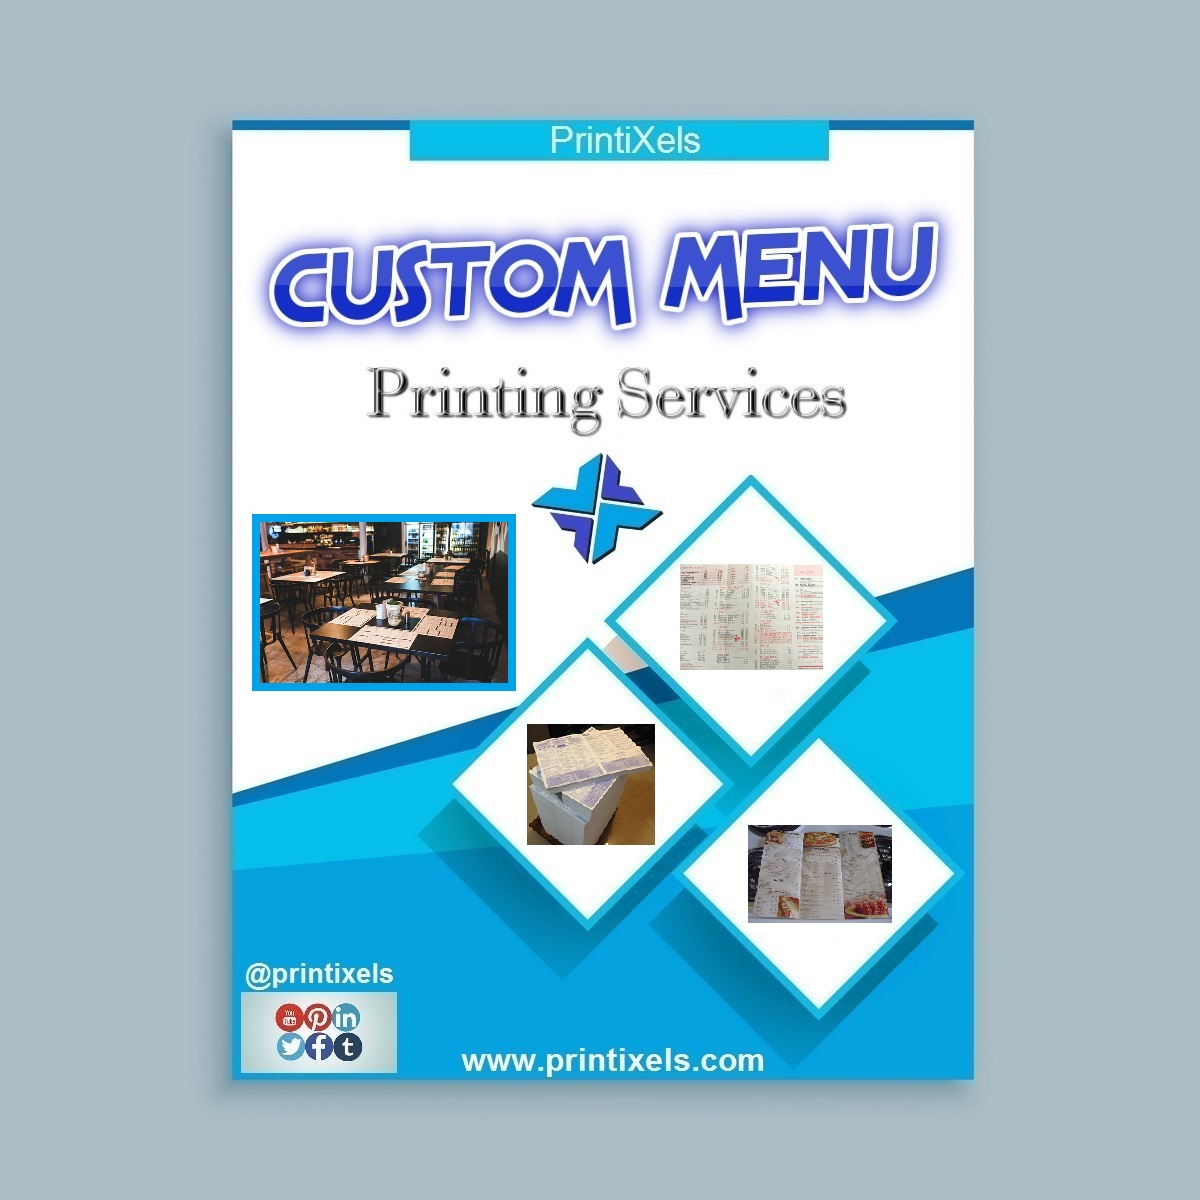 Custom Menu Printing Services